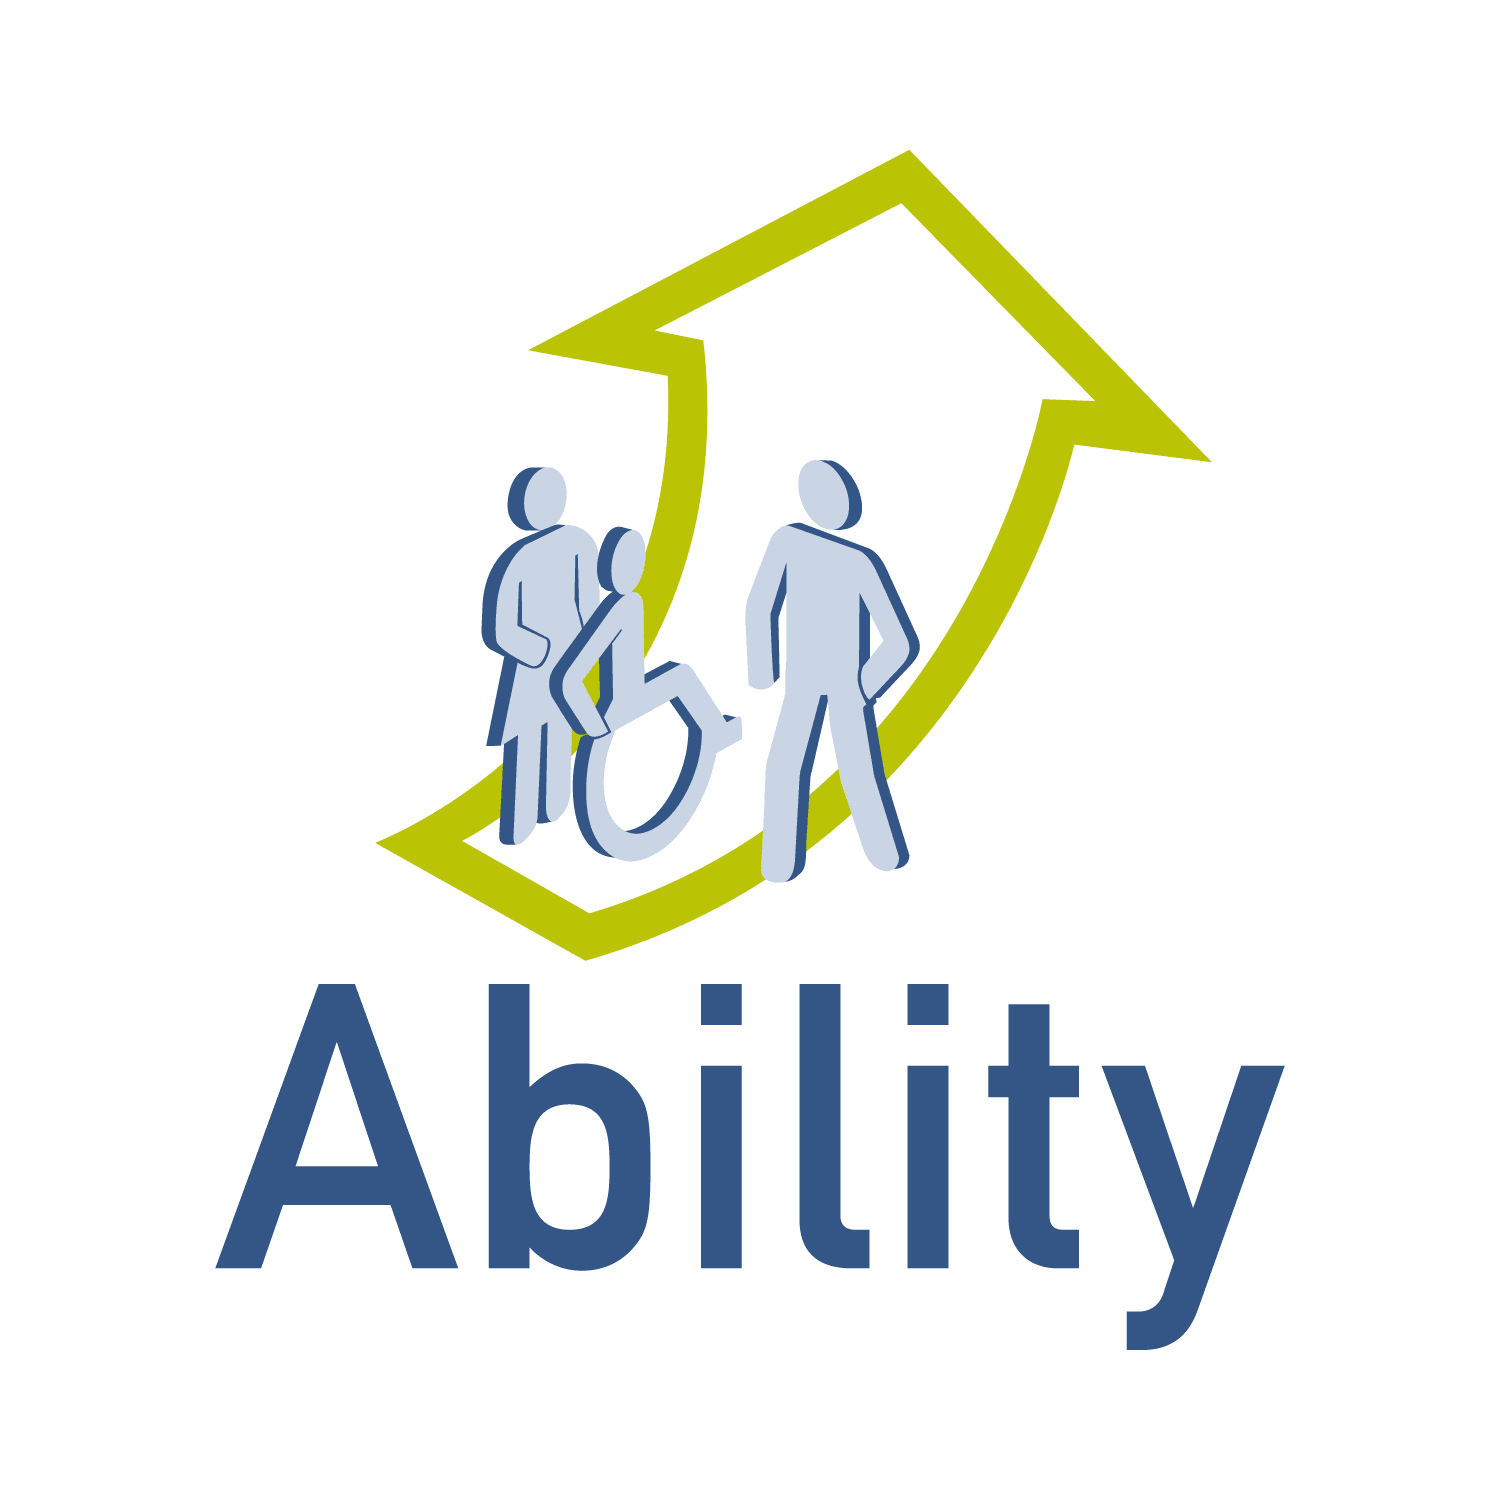 ability to provide adult literacy services